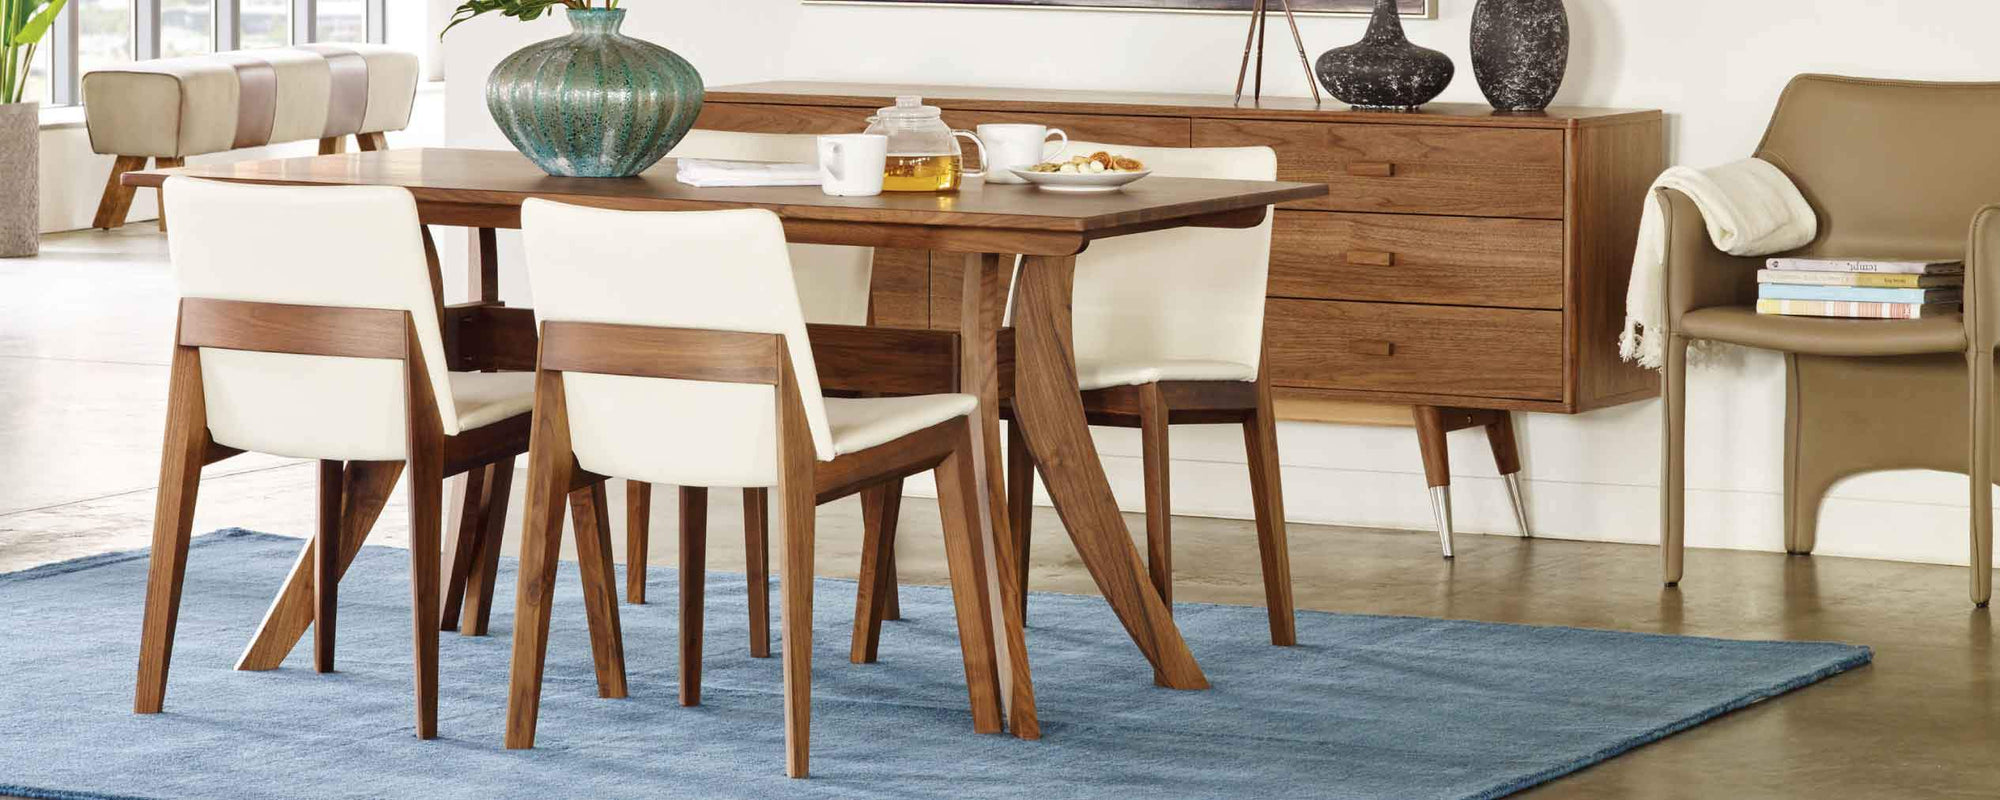 Mid-Century Modern Dining Room Furniture